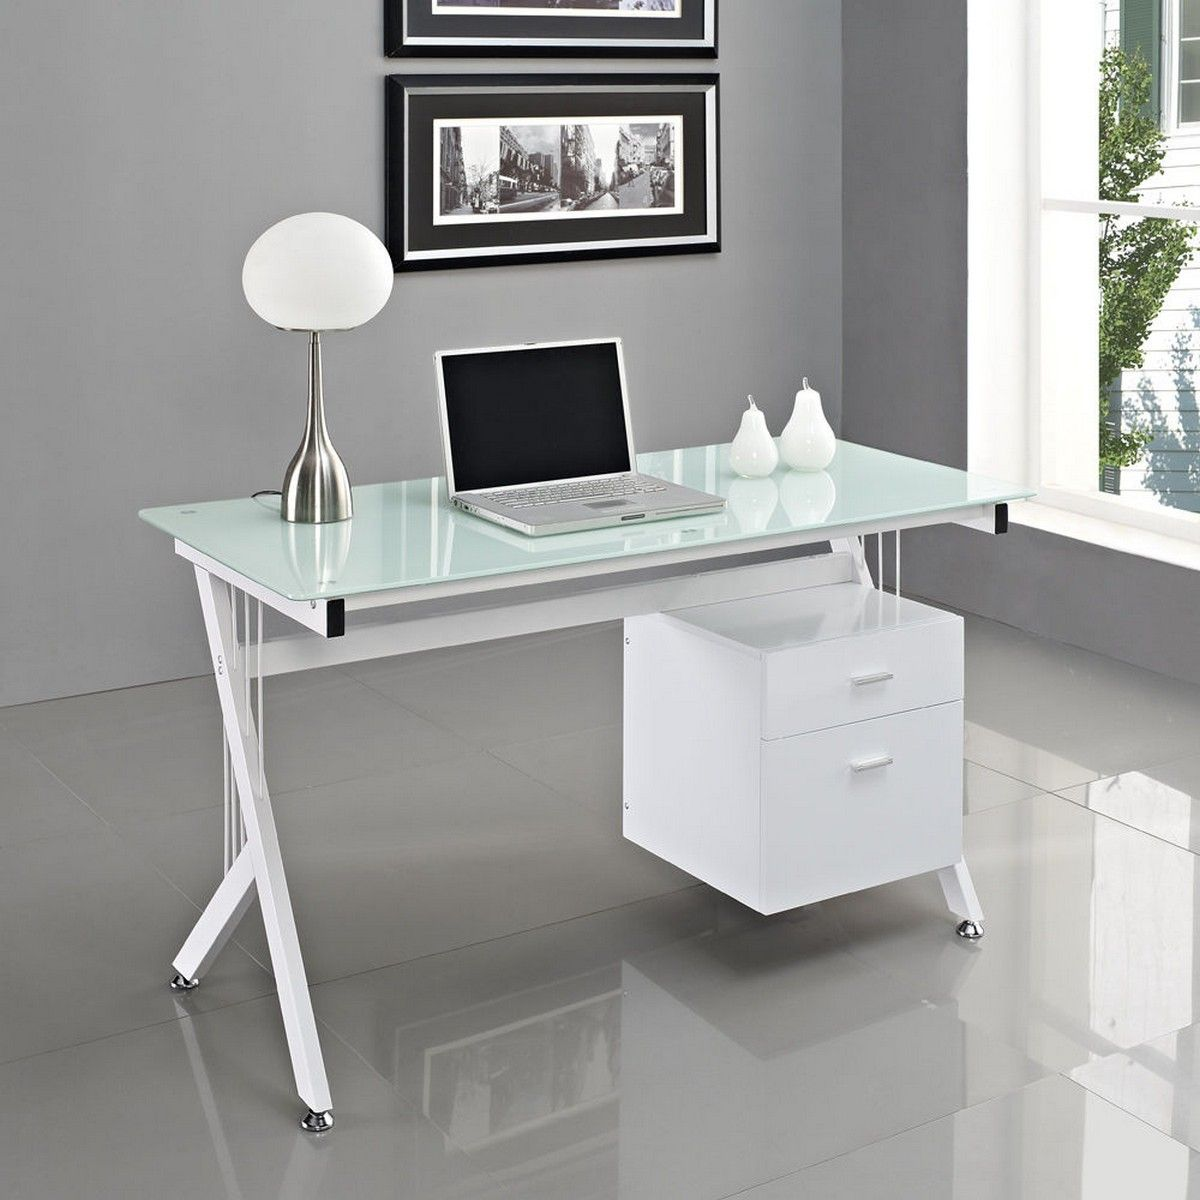 White glass computer desk pc table home office minimalist desk design pinterest - Best furniture ...